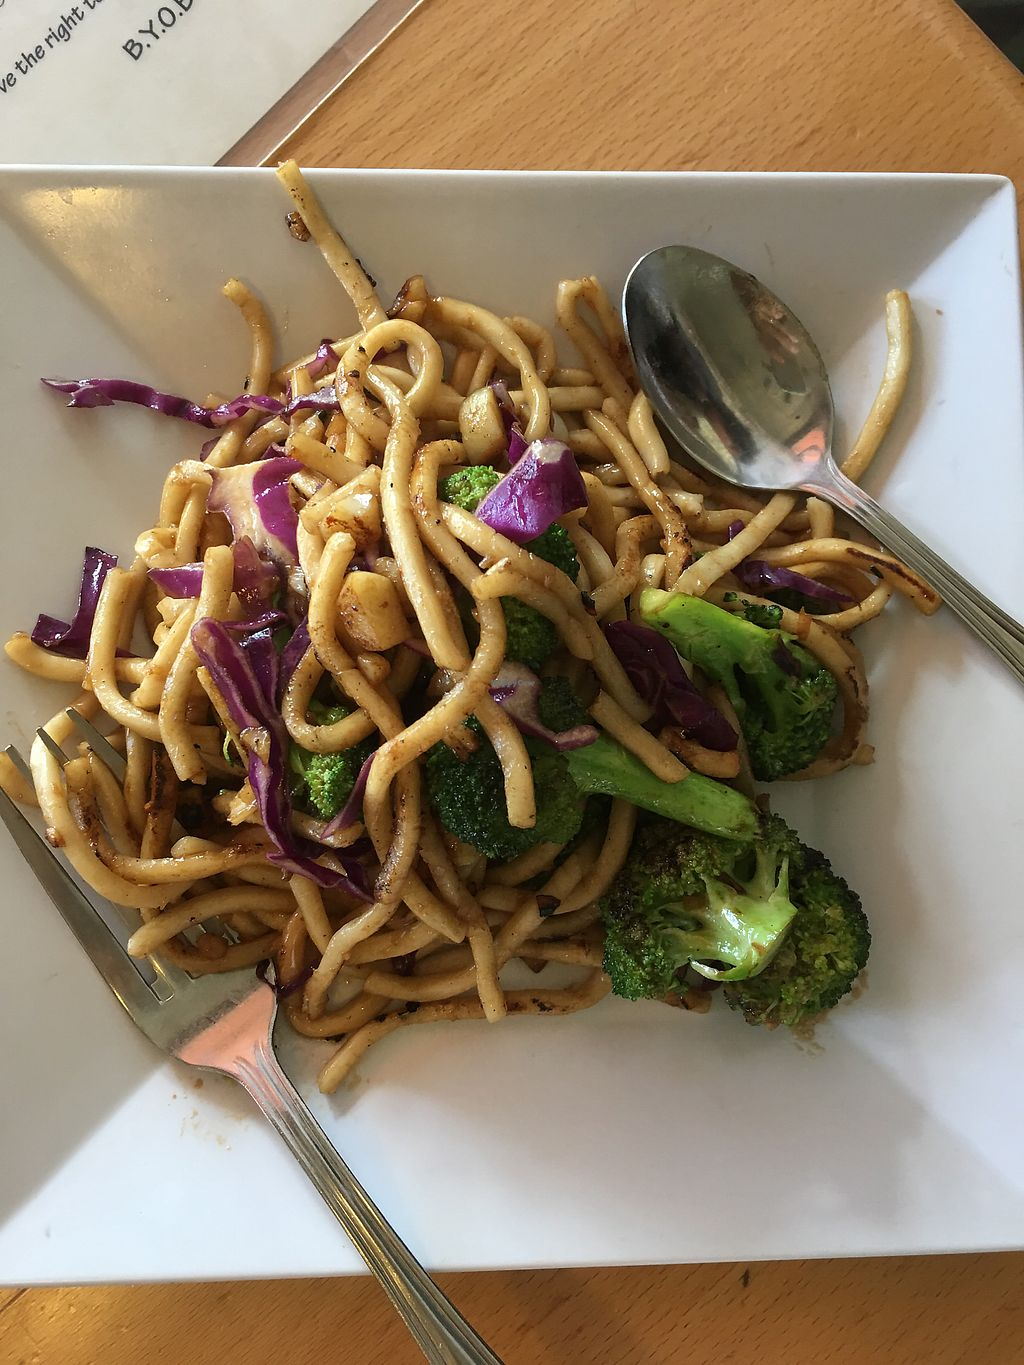 "Photo of Opal Thai  by <a href=""/members/profile/JessicaHolmes"">JessicaHolmes</a> <br/>Custom keiki noodles with garlic, red cabbage, and broccoli  <br/> September 10, 2017  - <a href='/contact/abuse/image/29883/302777'>Report</a>"